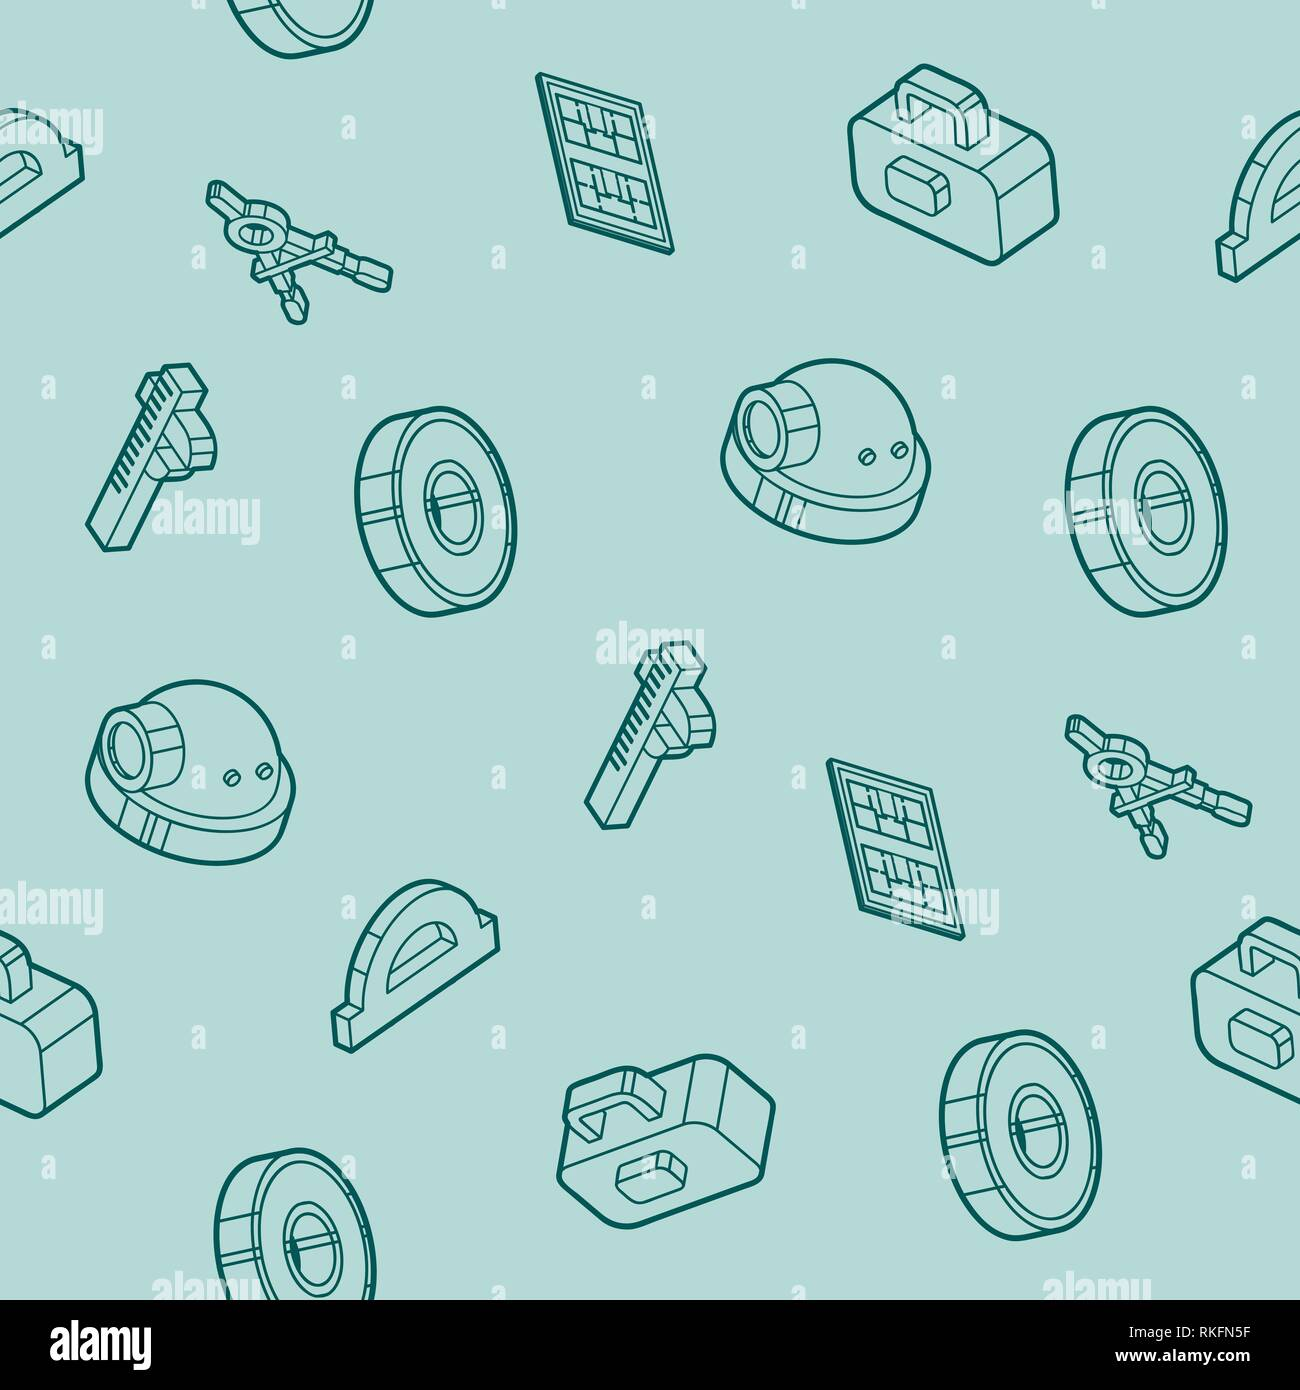 Engineering outline pattern. Construction Engineer. Vector illustration EPS 10 Stock Vector